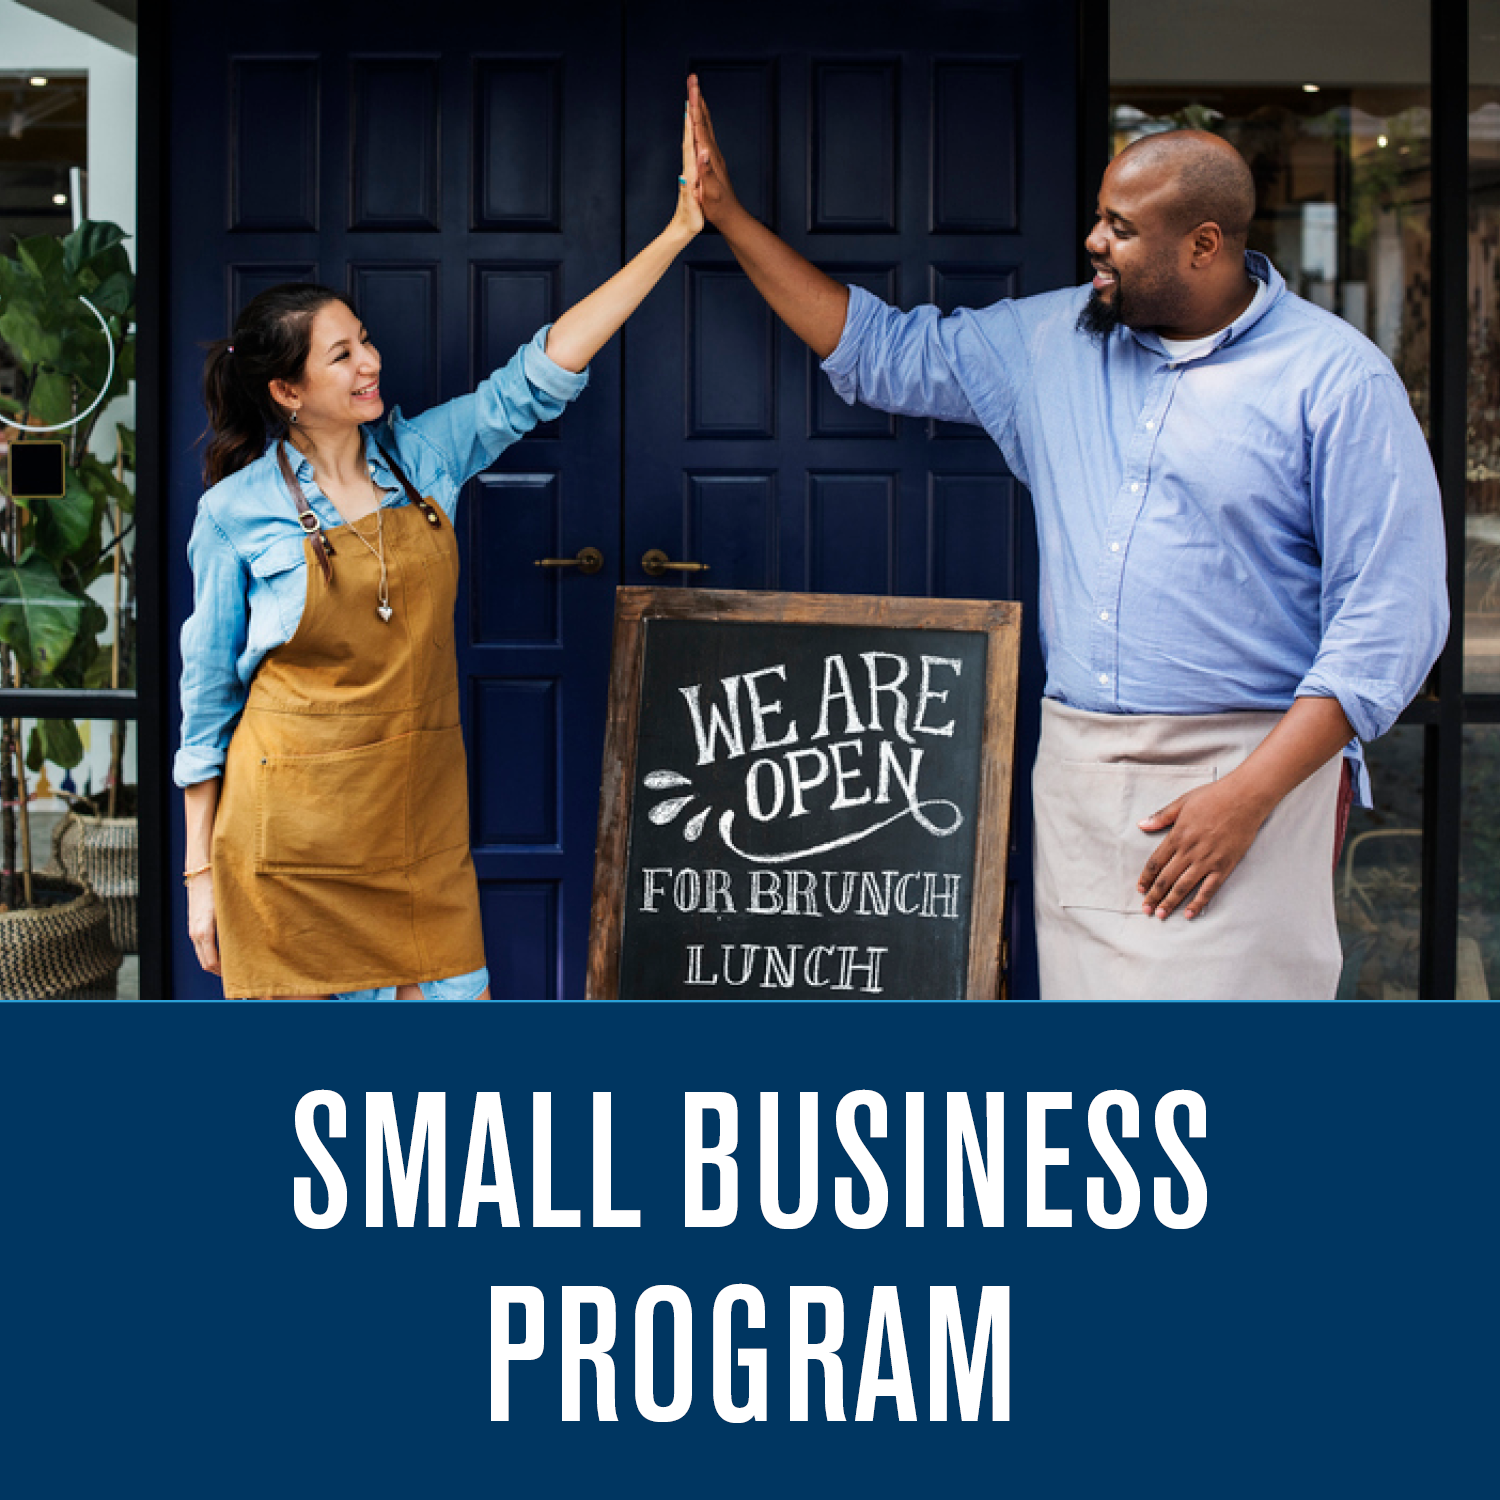 Small Business Program